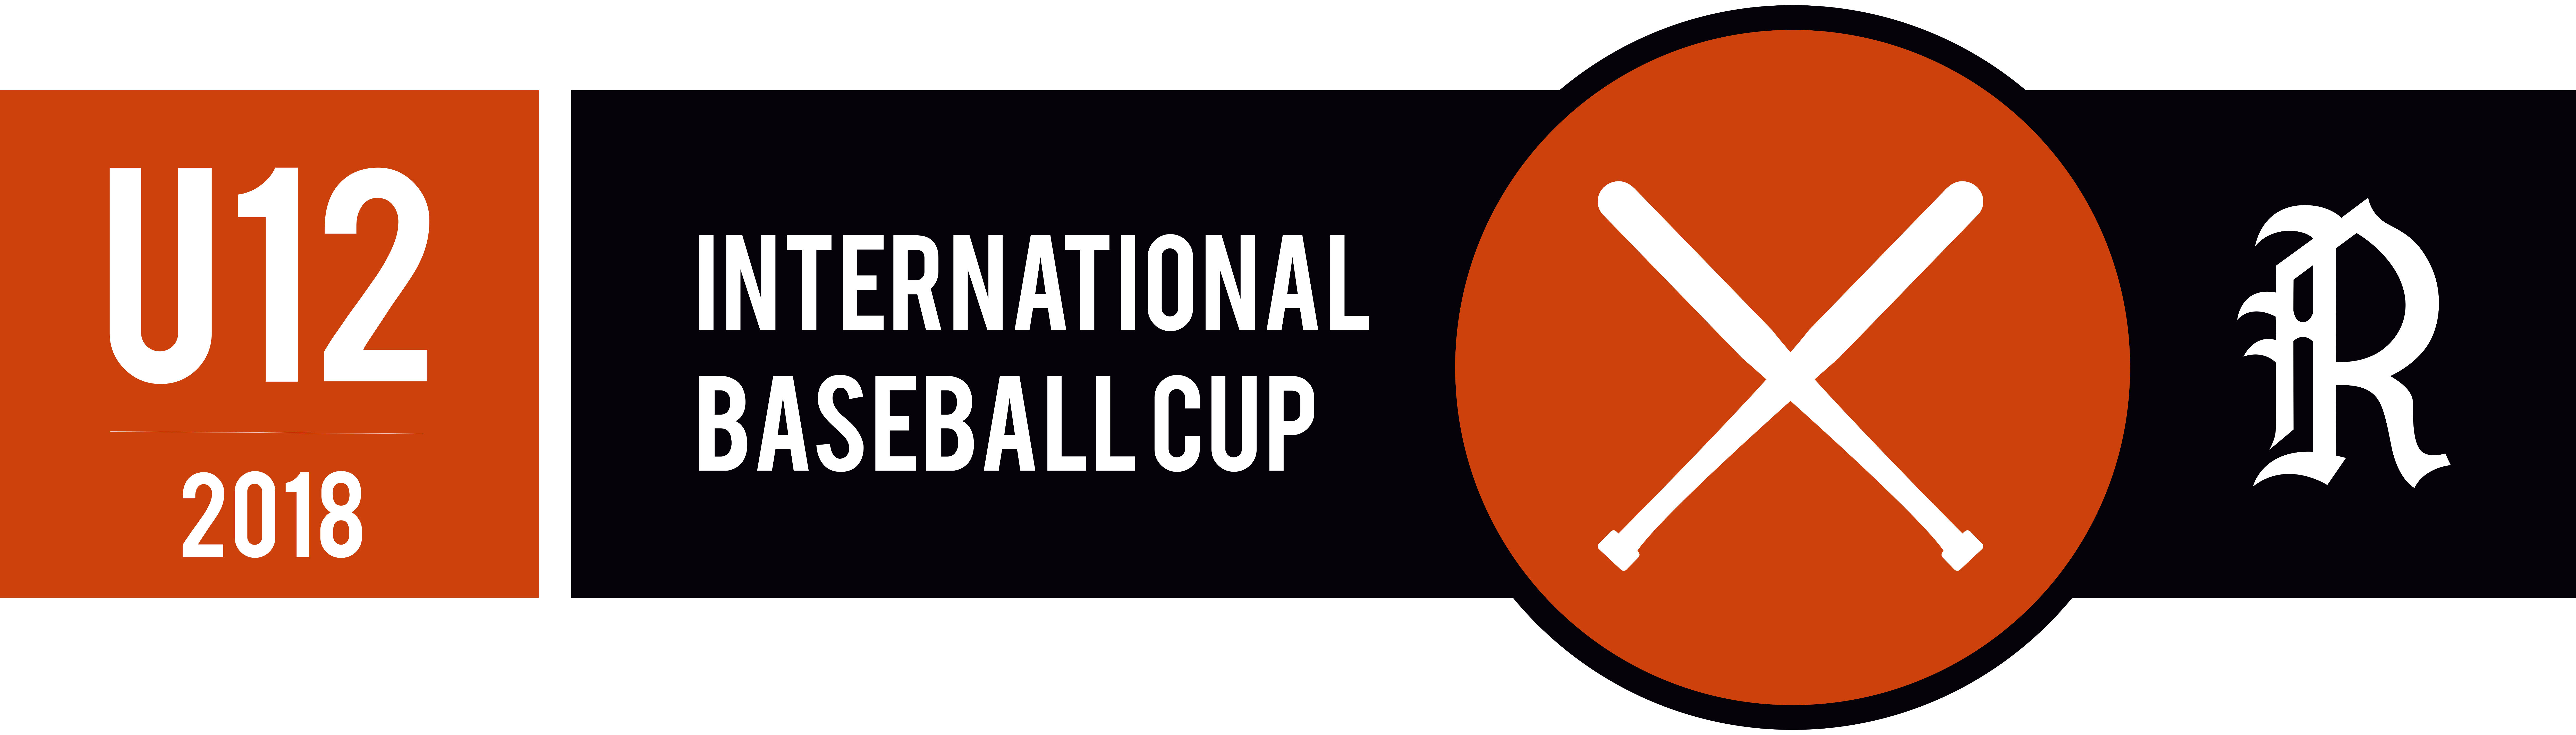 U12 International Baseball Cup 2018